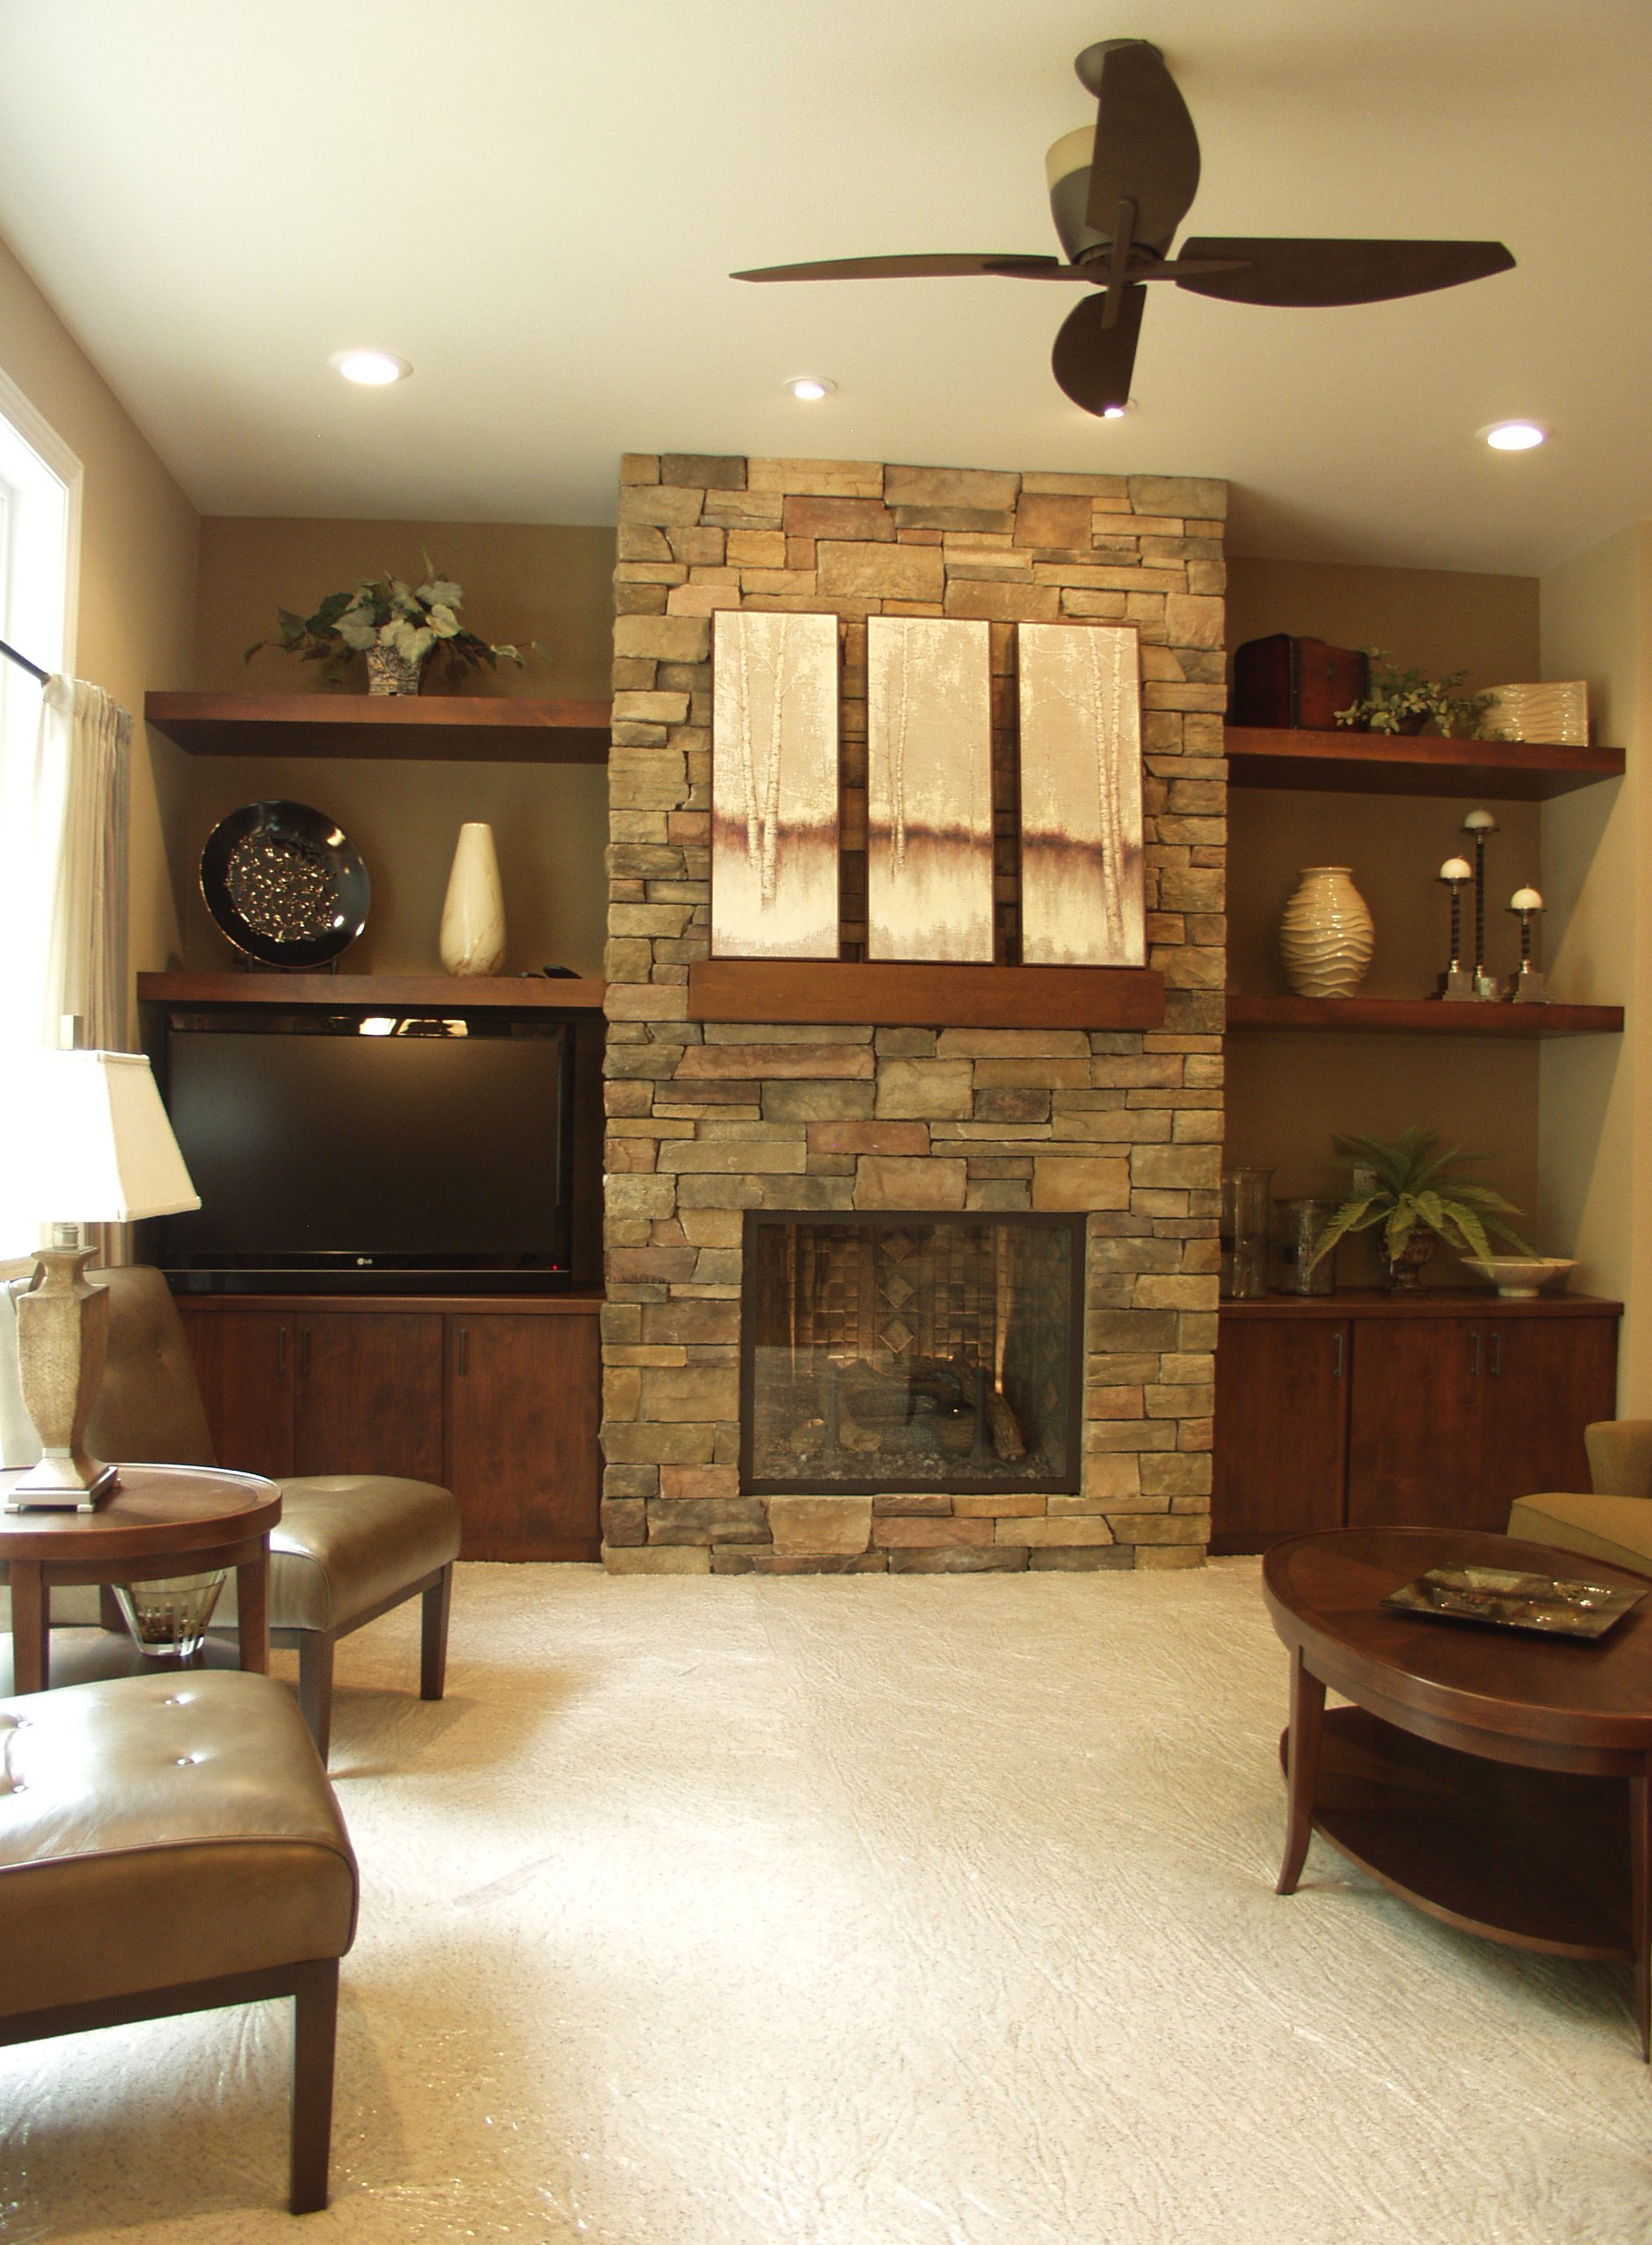 Featherstone Cabinetry & Design image 3